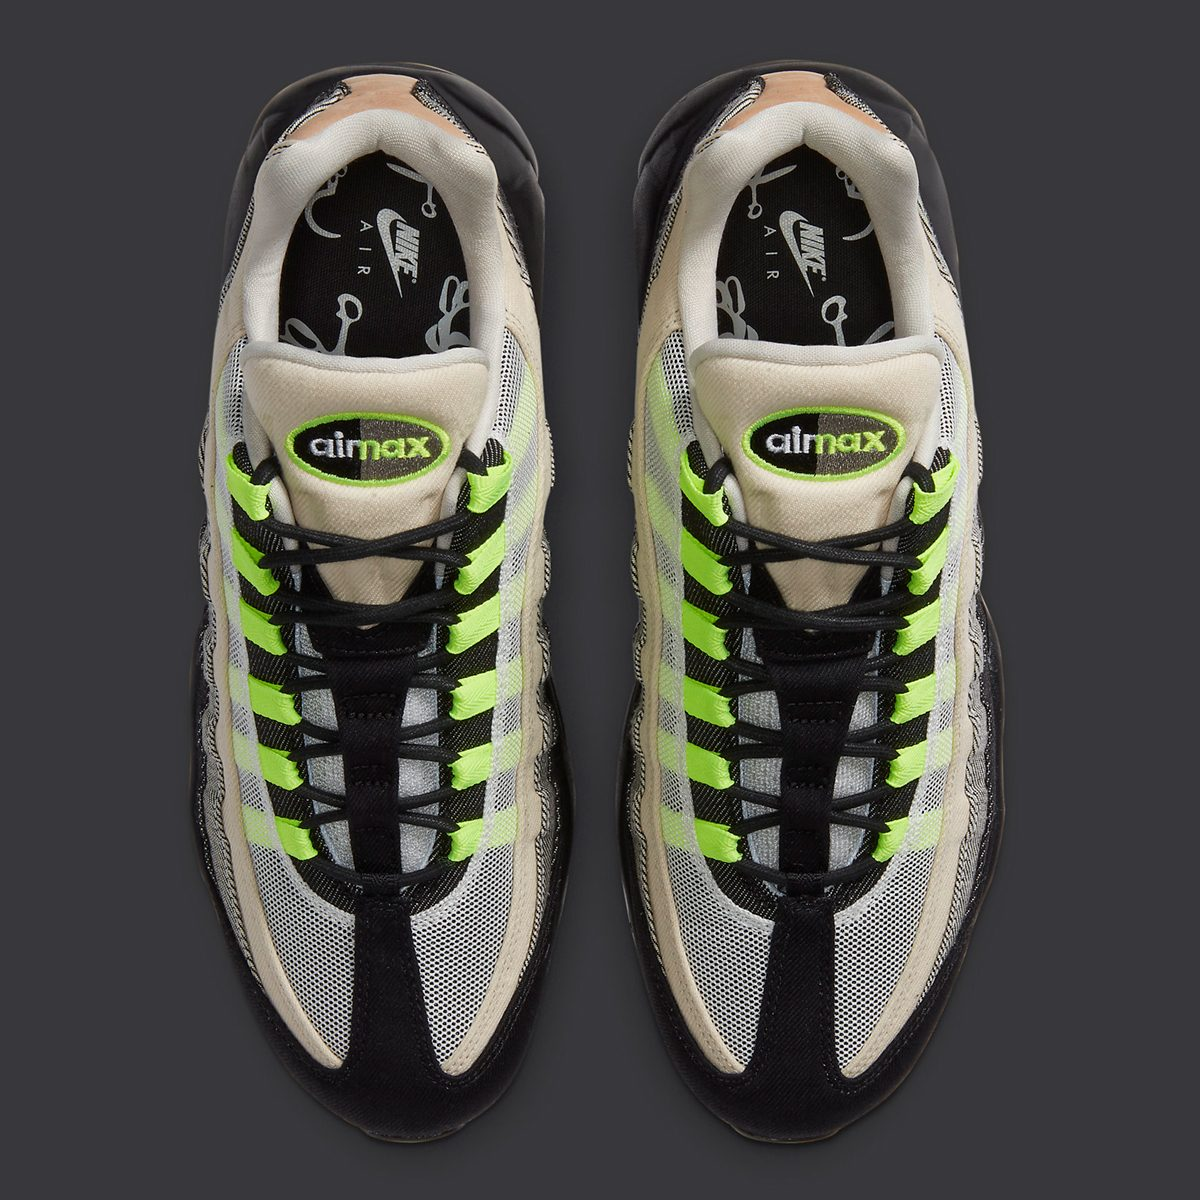 Denham x Nike Air Max 95 Honors the OG Neon With Their Signature Fabrications